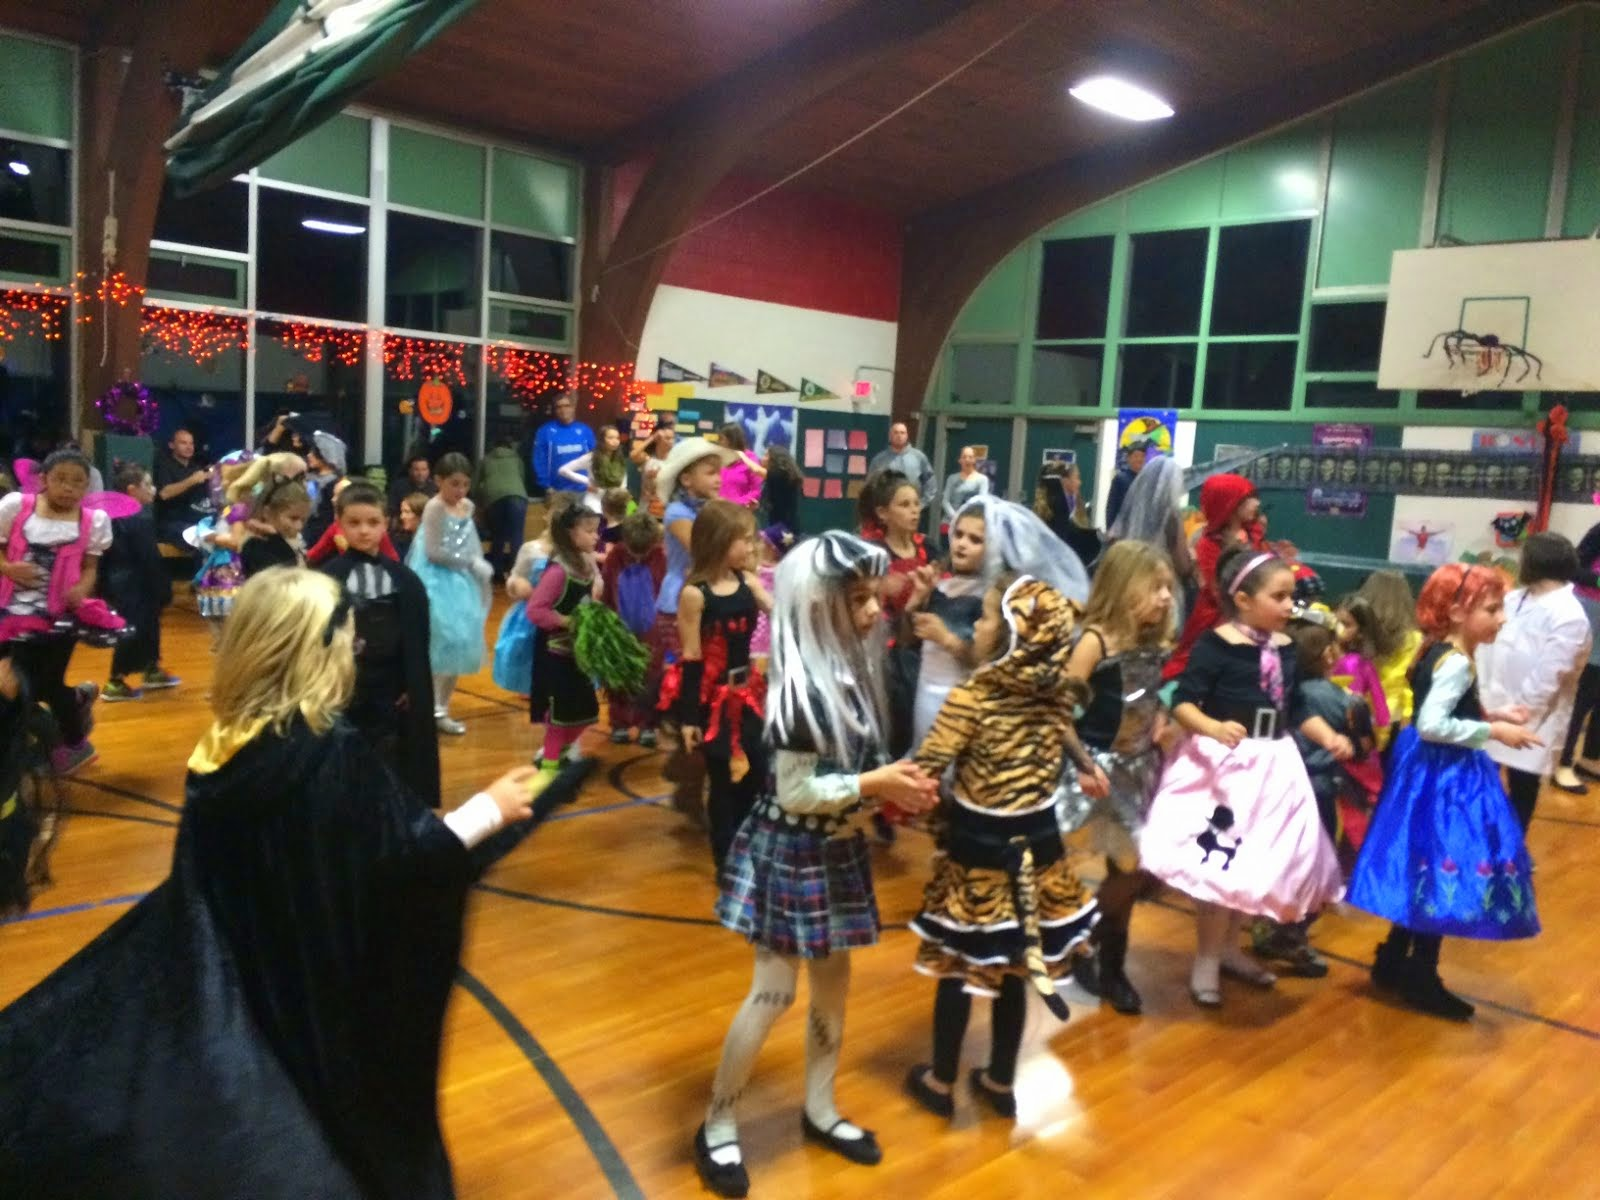 Pine Glen Elementary School Principal's Blog: PTO Halloween Party